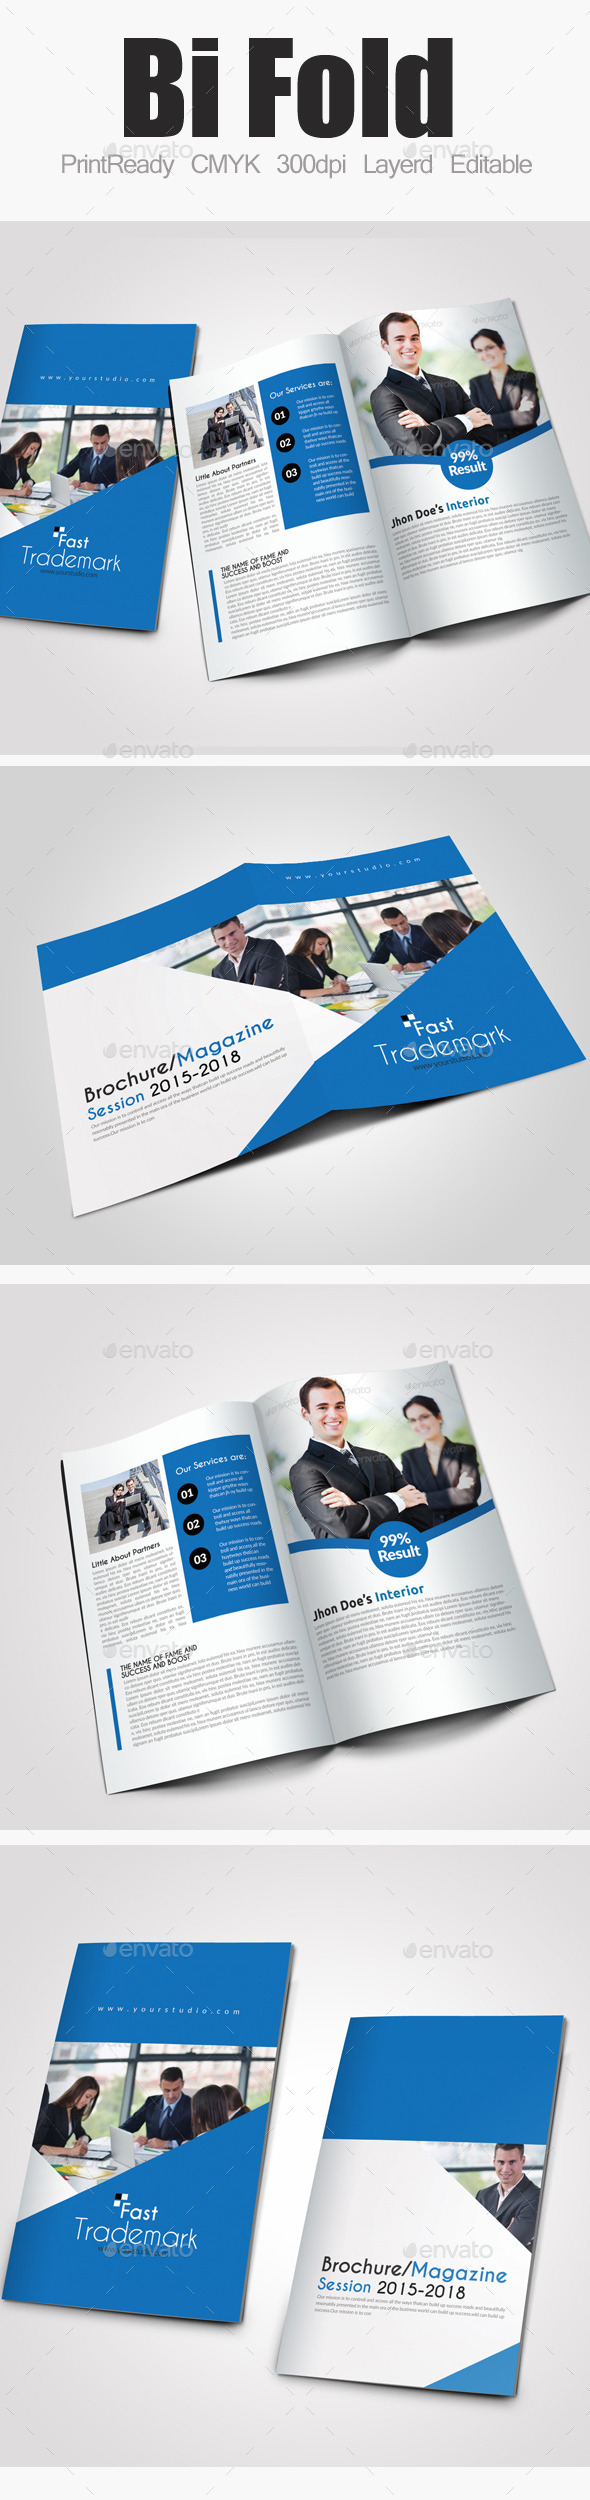 Bi fold business brochure corporate brochures for Bi fold brochure template illustrator